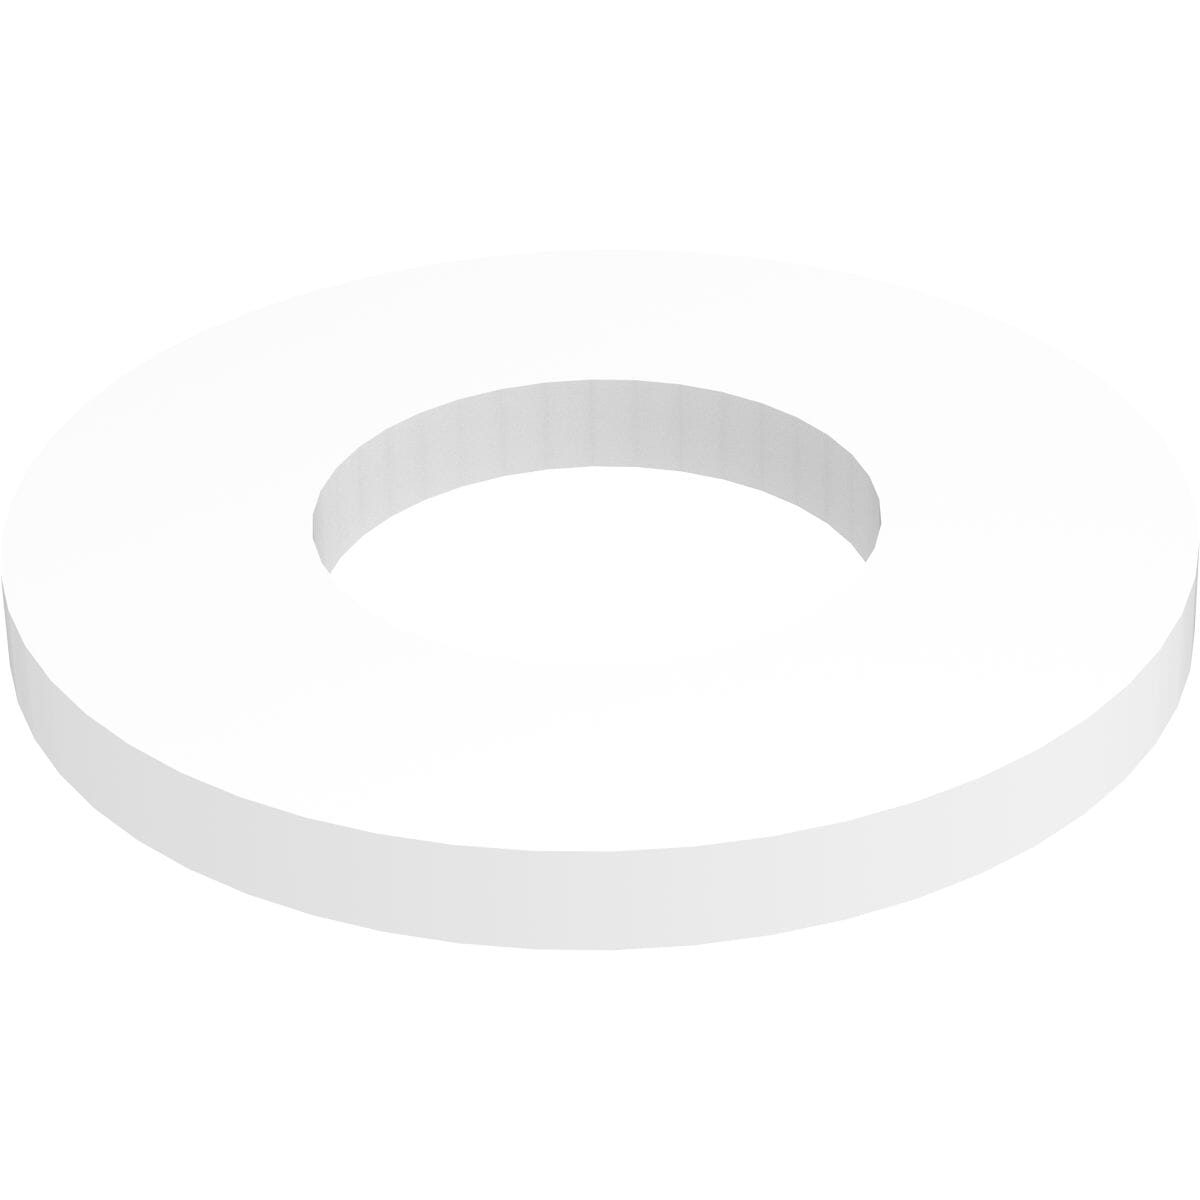 17mm x 50mm x 3mm Flat Washers (DIN 9021) - Nylon